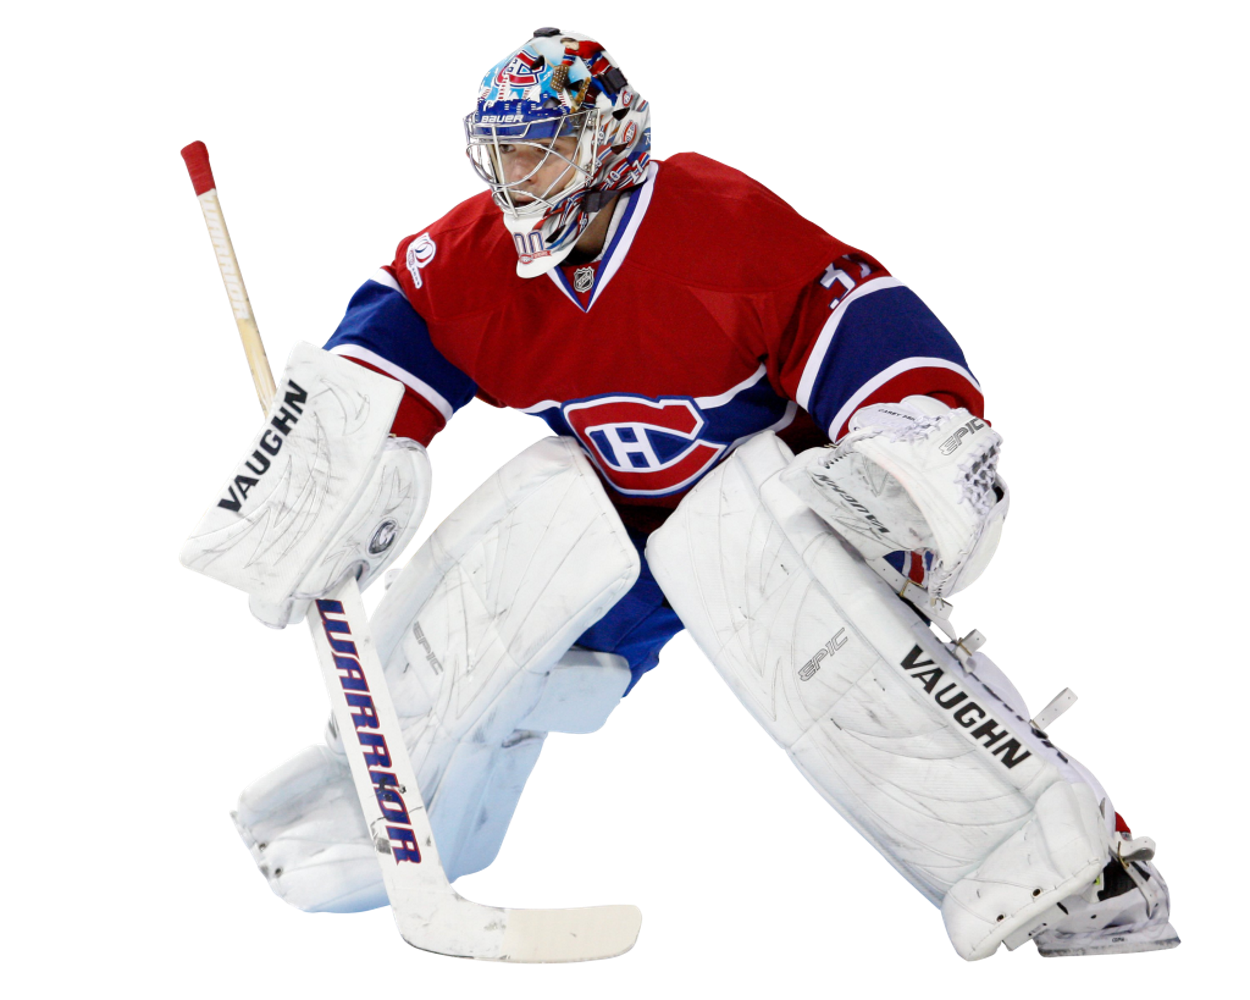 Png images free download. Hockey clipart hockey goalie